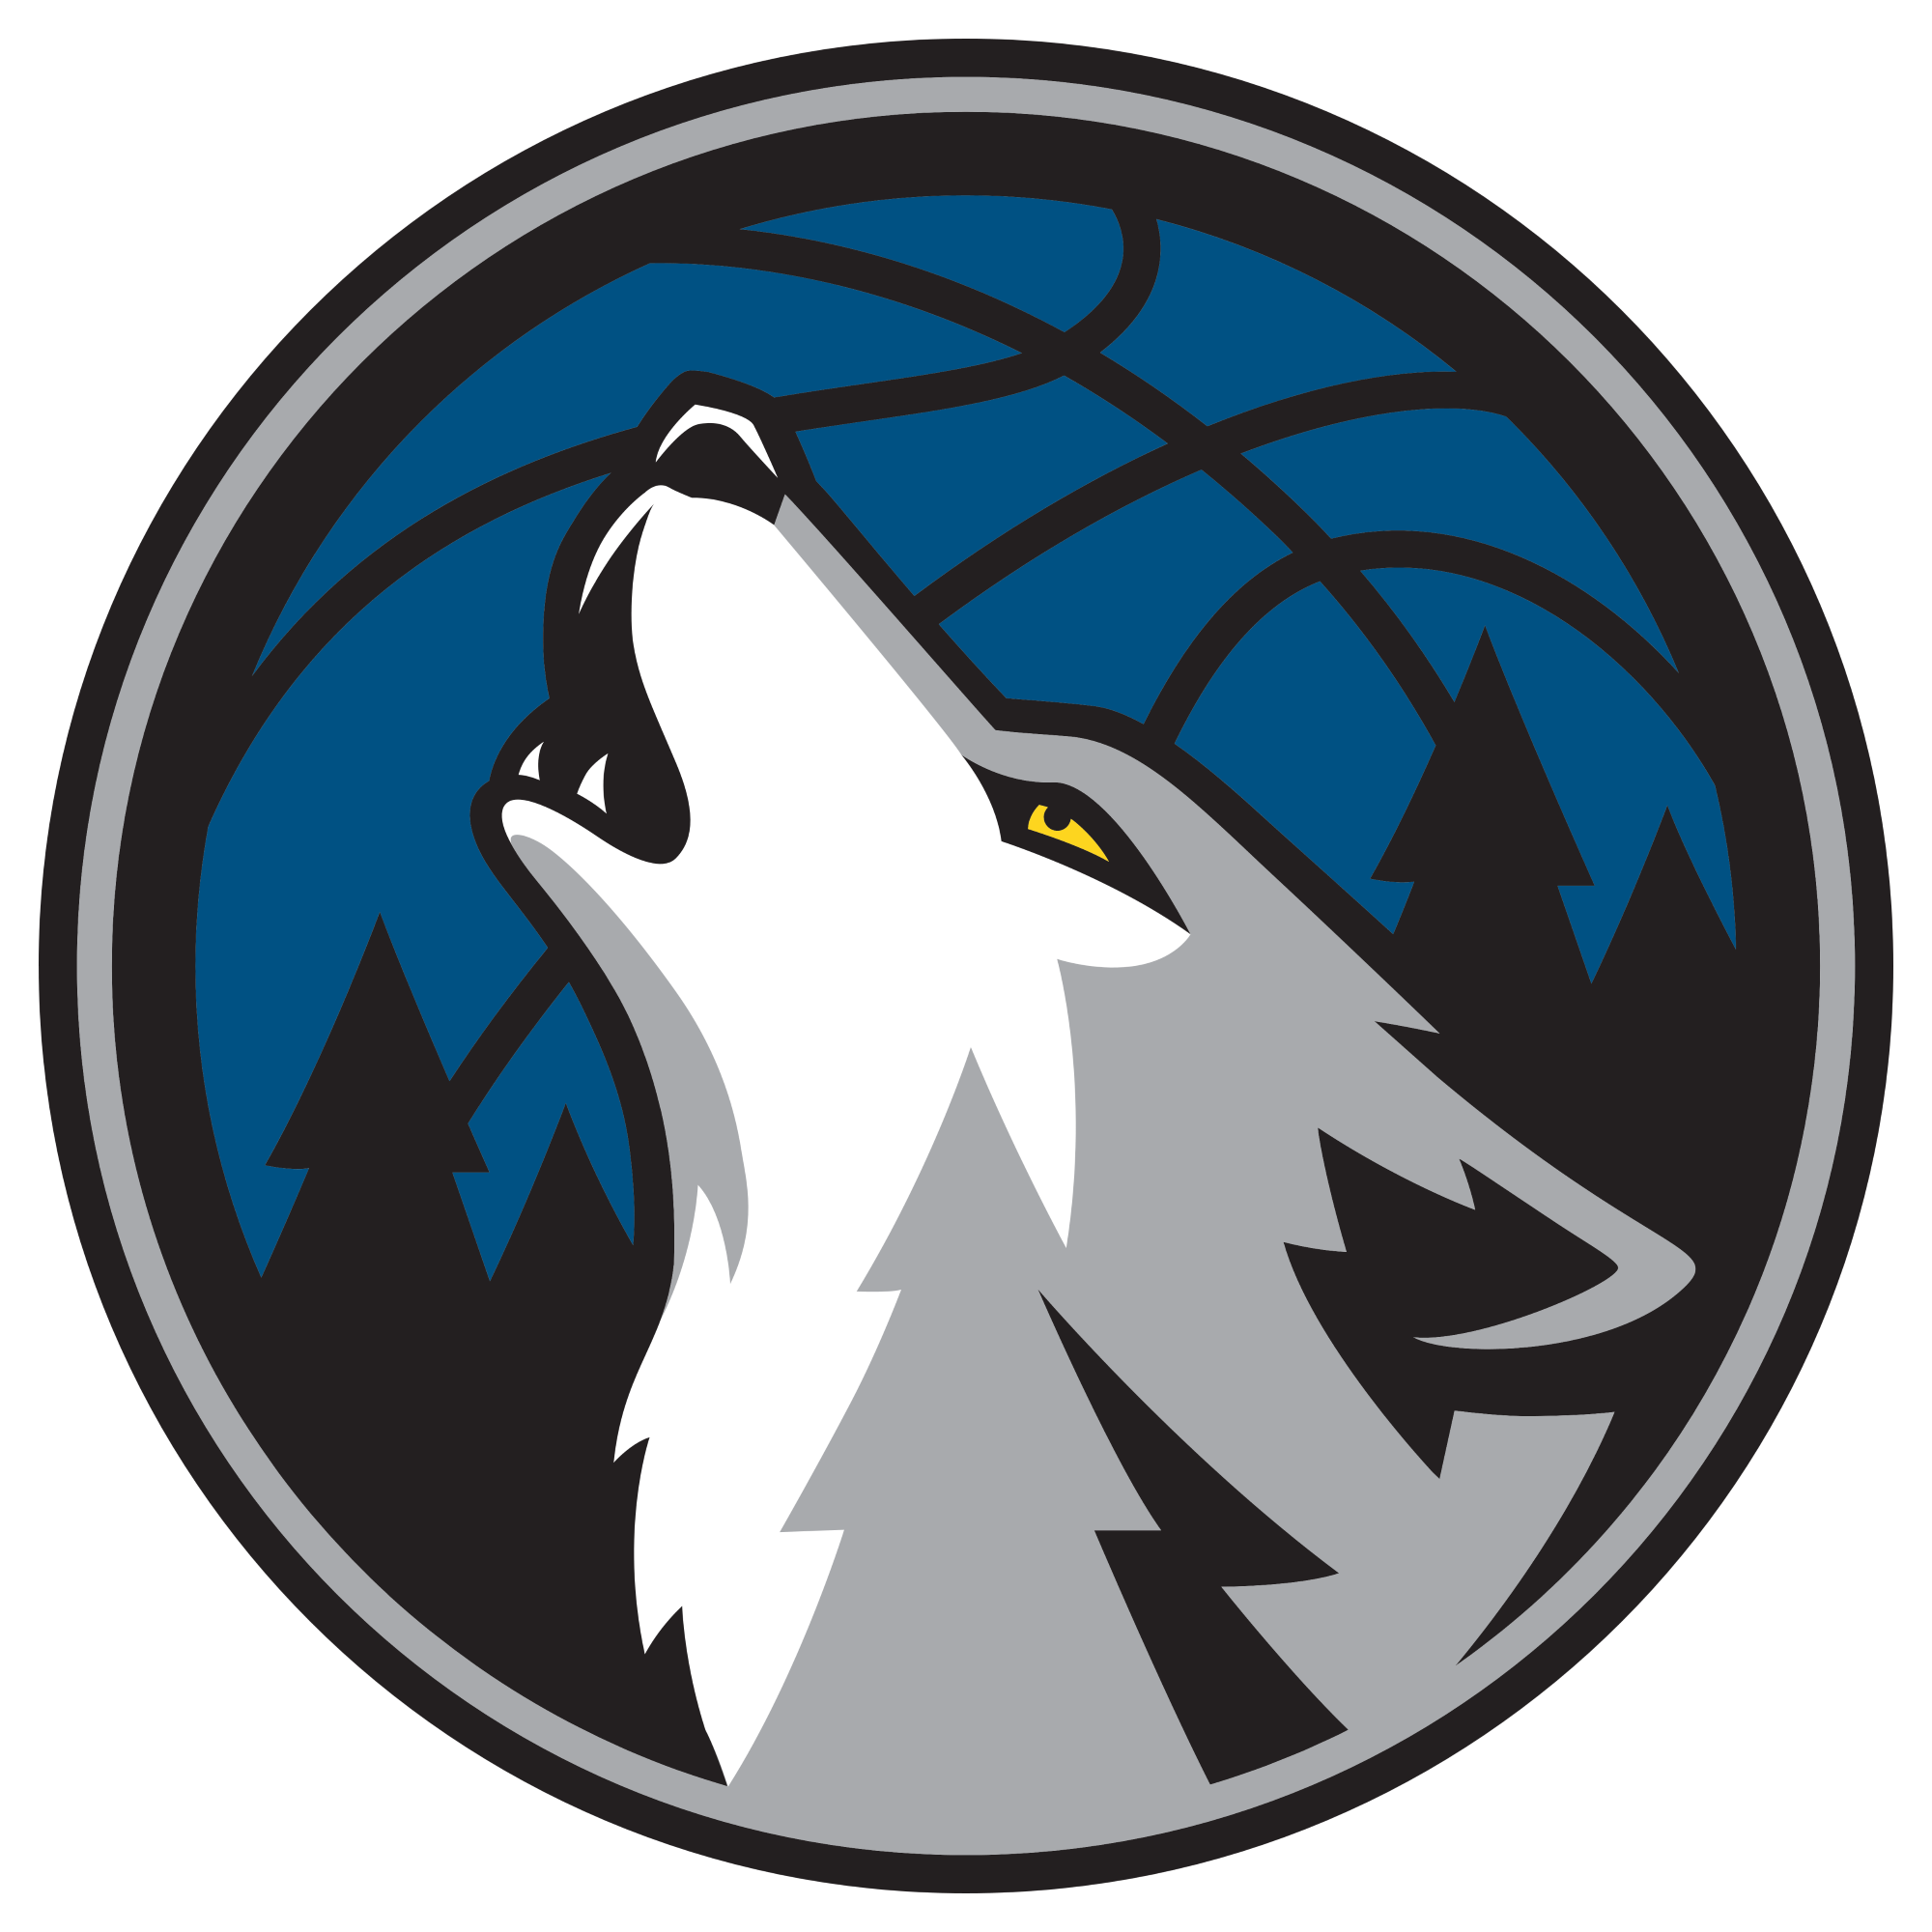 Minnesota Timberwolves officially unveil new logo - Minnesota Timberwolves PNG